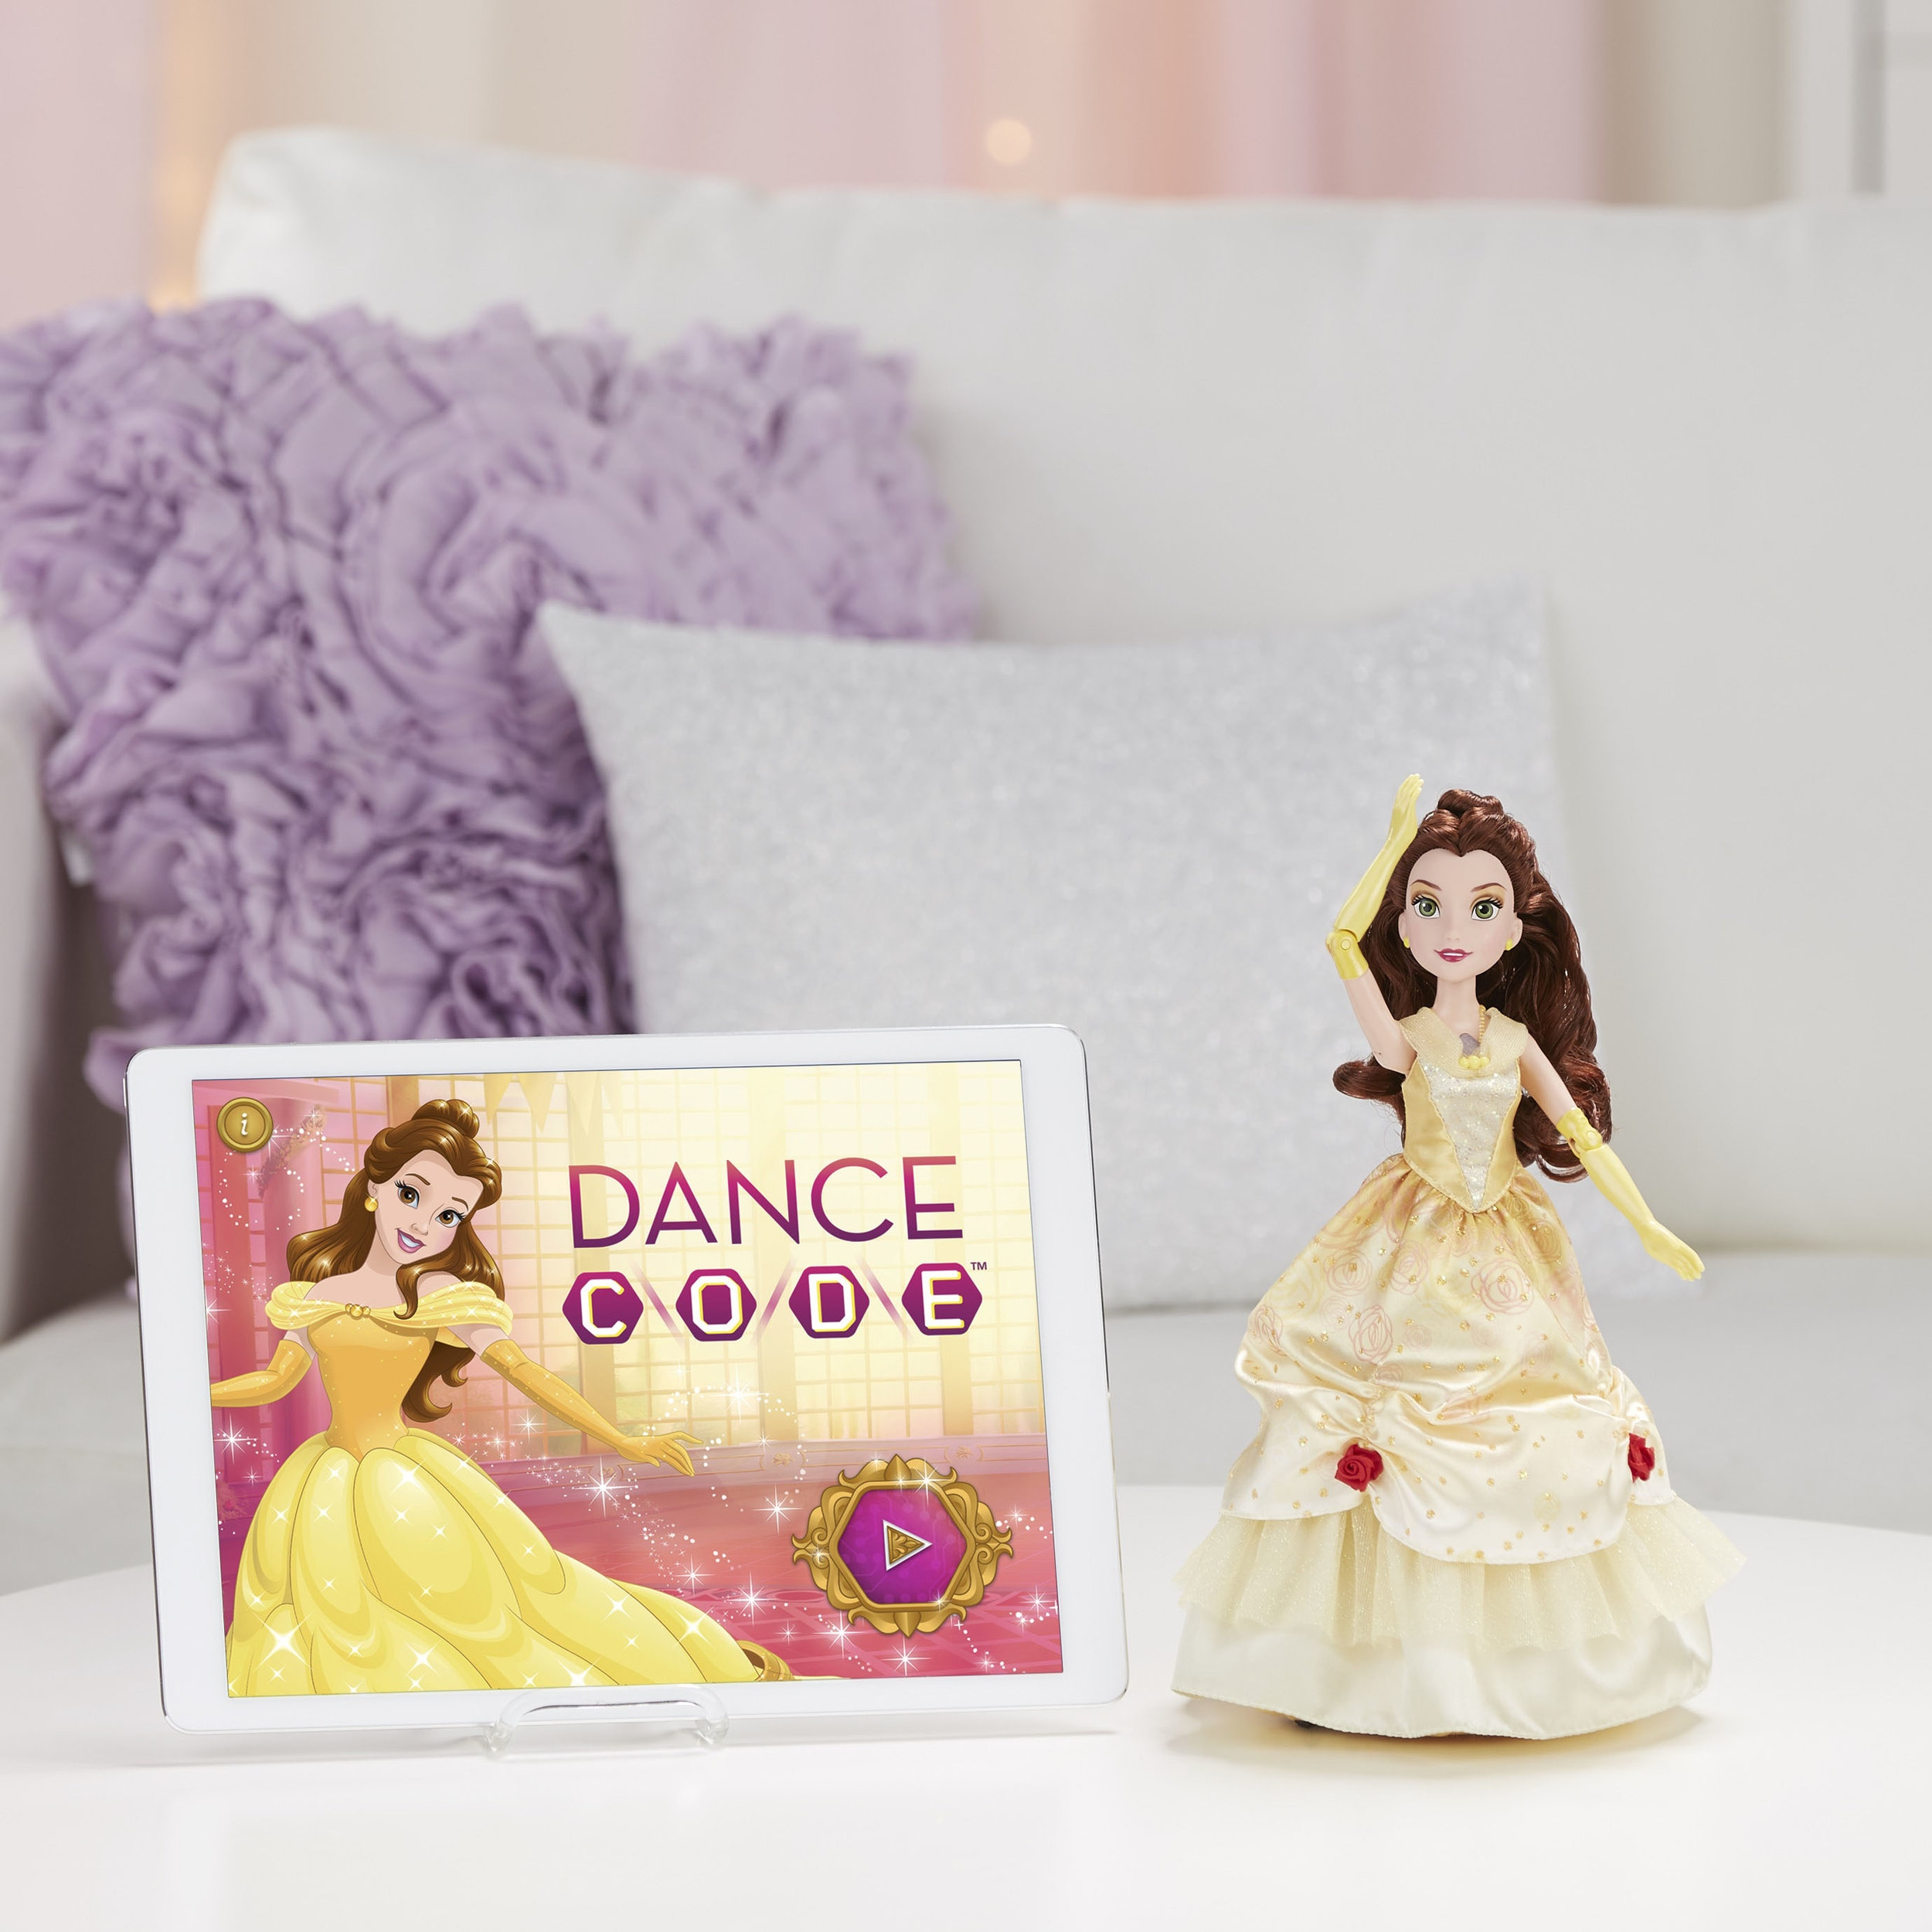 Amazon Exclusive BRAND NEW Dance Code featuring Disney Princess Belle